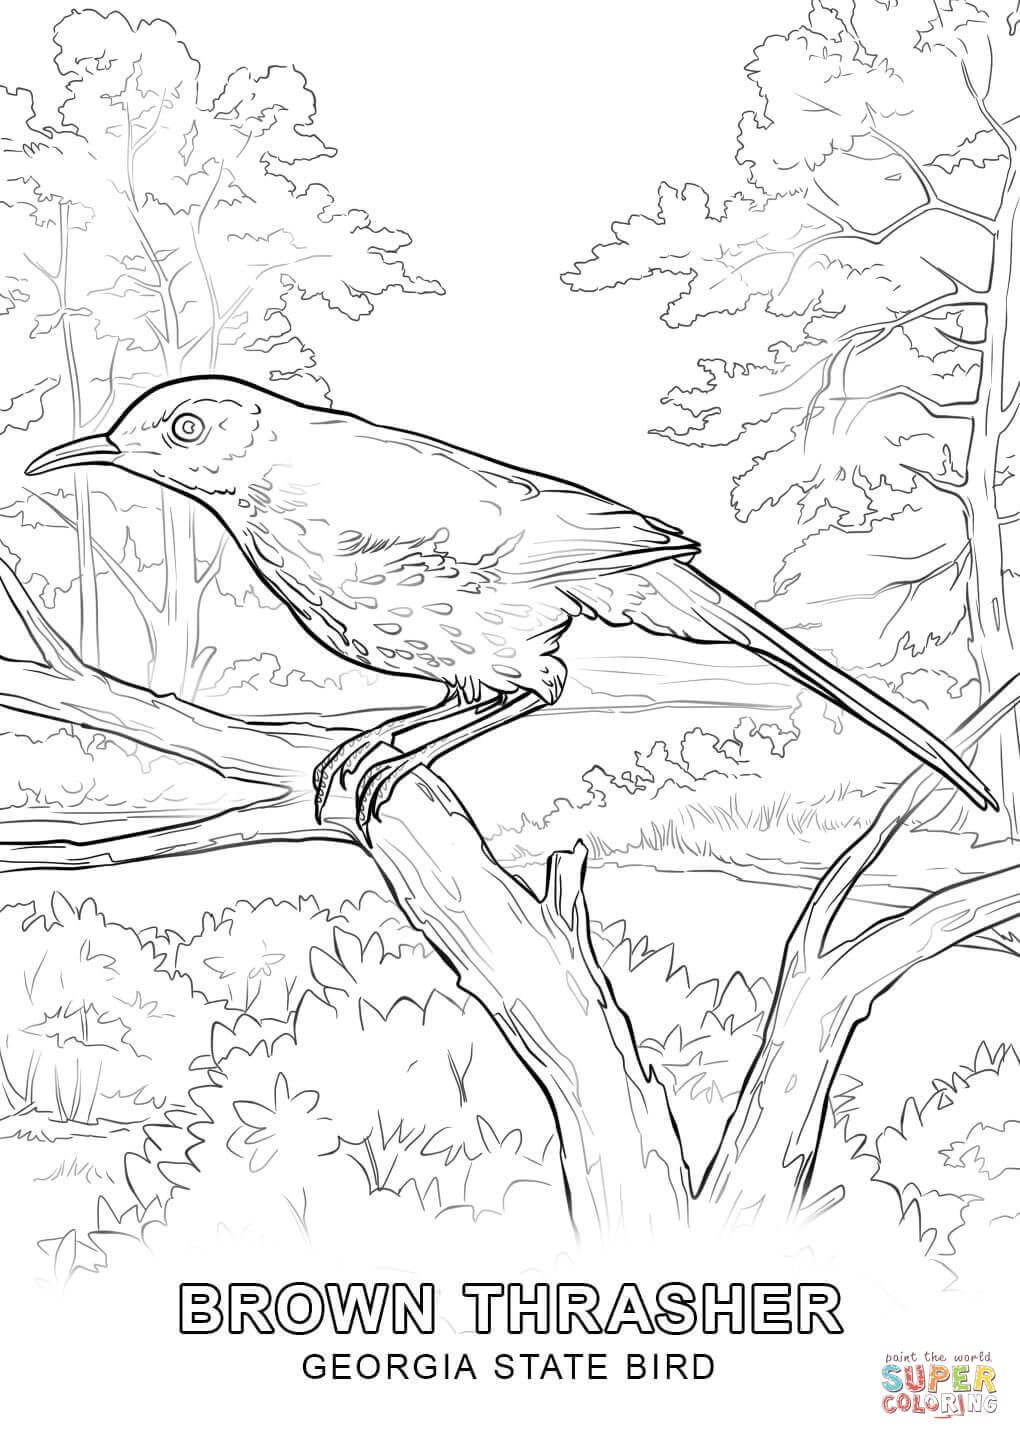 Click The Georgia State Bird Coloring Pages To View Printable Version Or Color It Online Compatible With IPad And Android Tablets